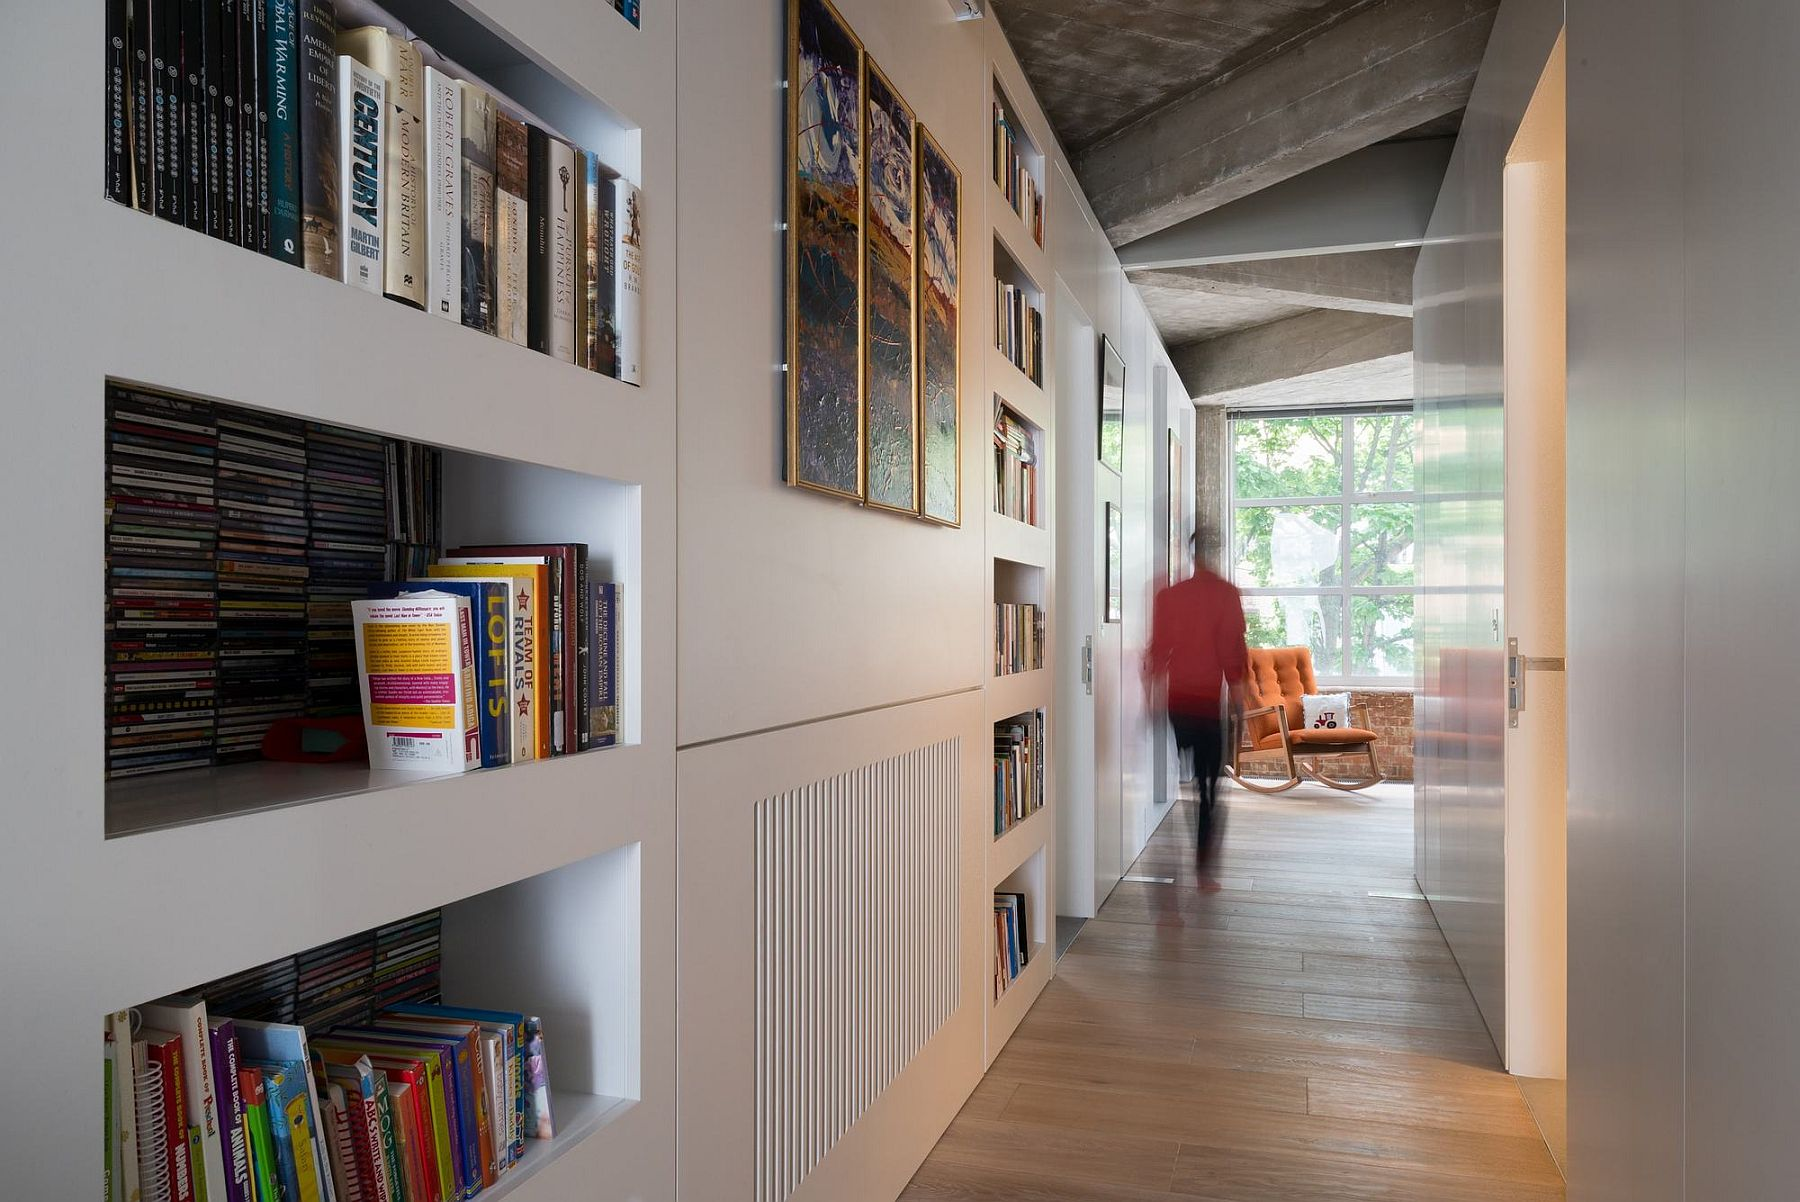 Custom additions and storage units bring additional functionality to the loft home